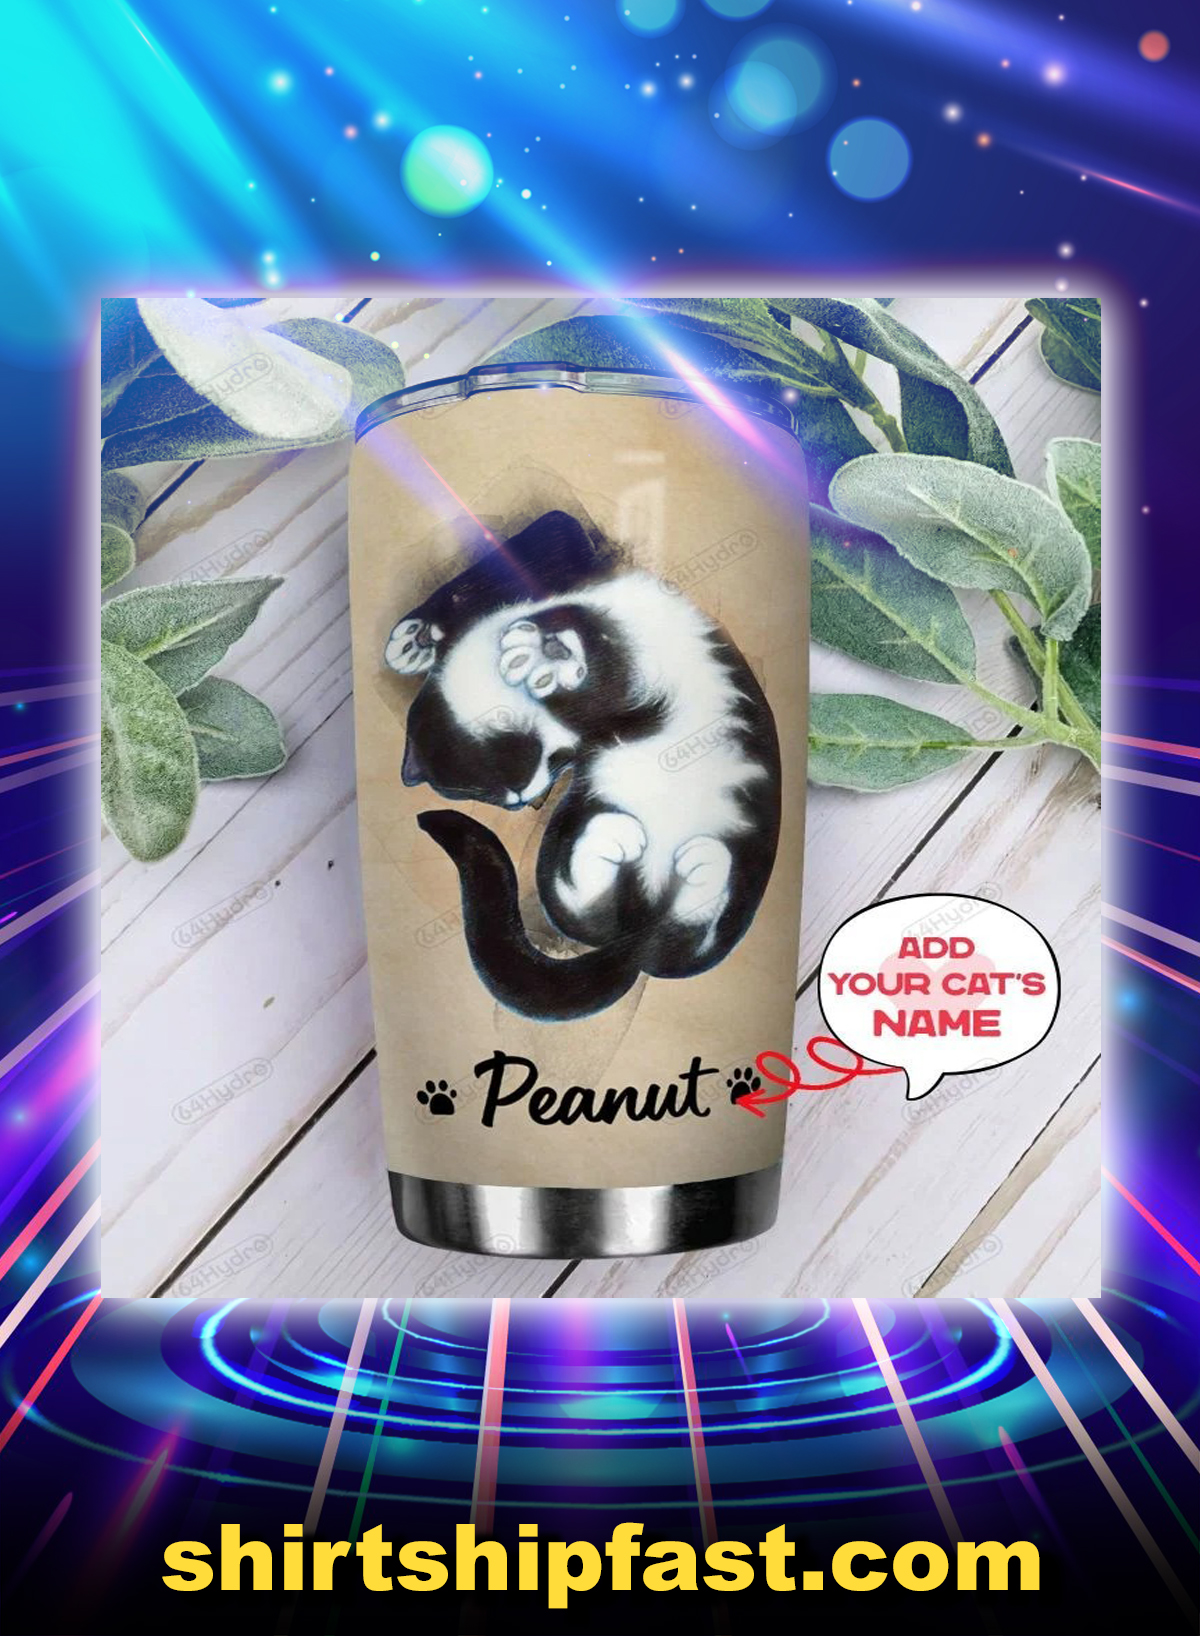 Tuxedo cat i am your friend personalized custom name tumbler - Picture 1